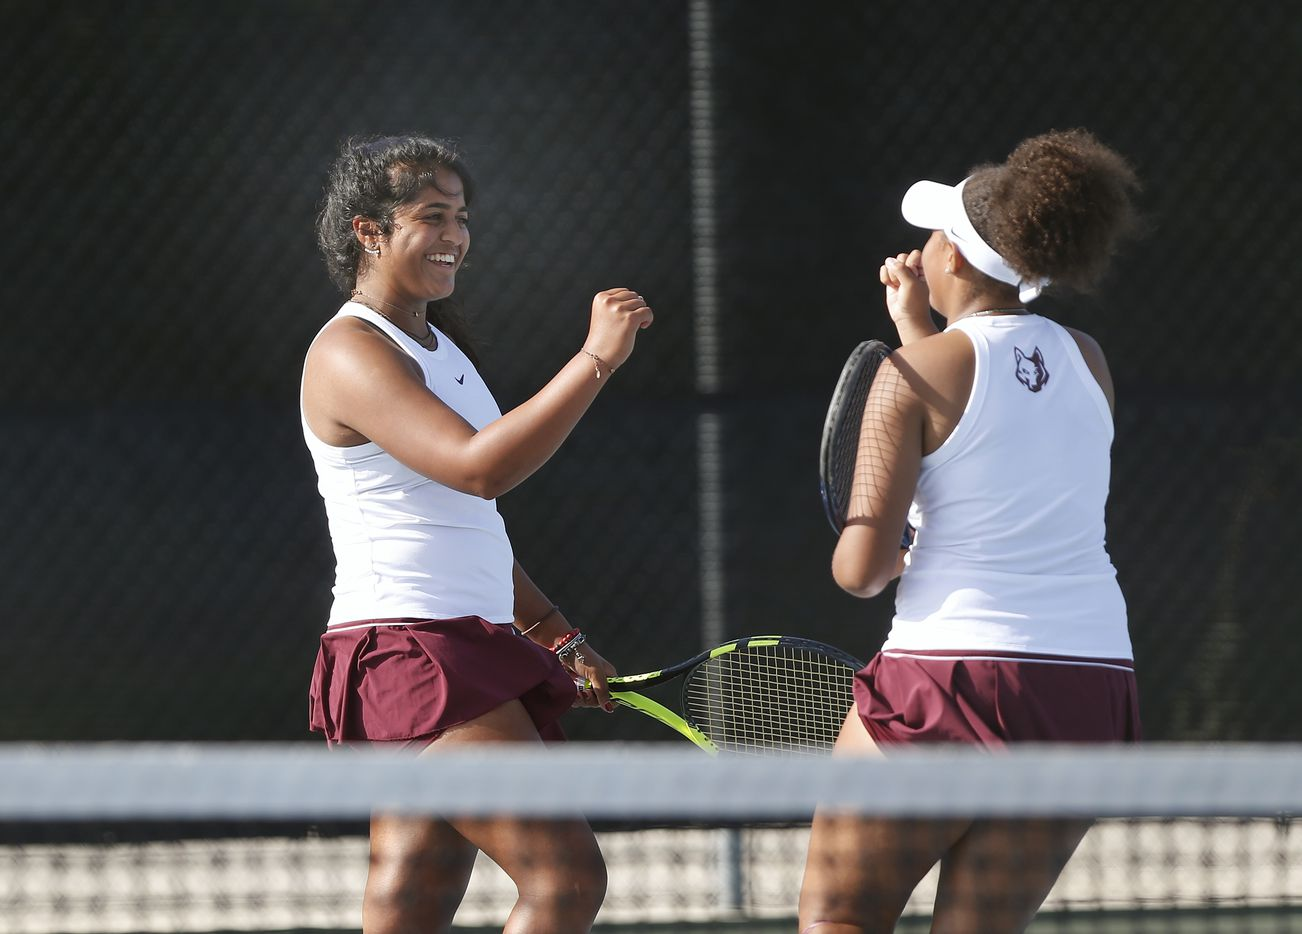 Saundarya Vedula (let) high fives teammate Tamiya Lintz after they scored a point in the 5A girls doubles match at the UIL State Tennis finals at Northside Tennis on Friday, May 21, 2021.